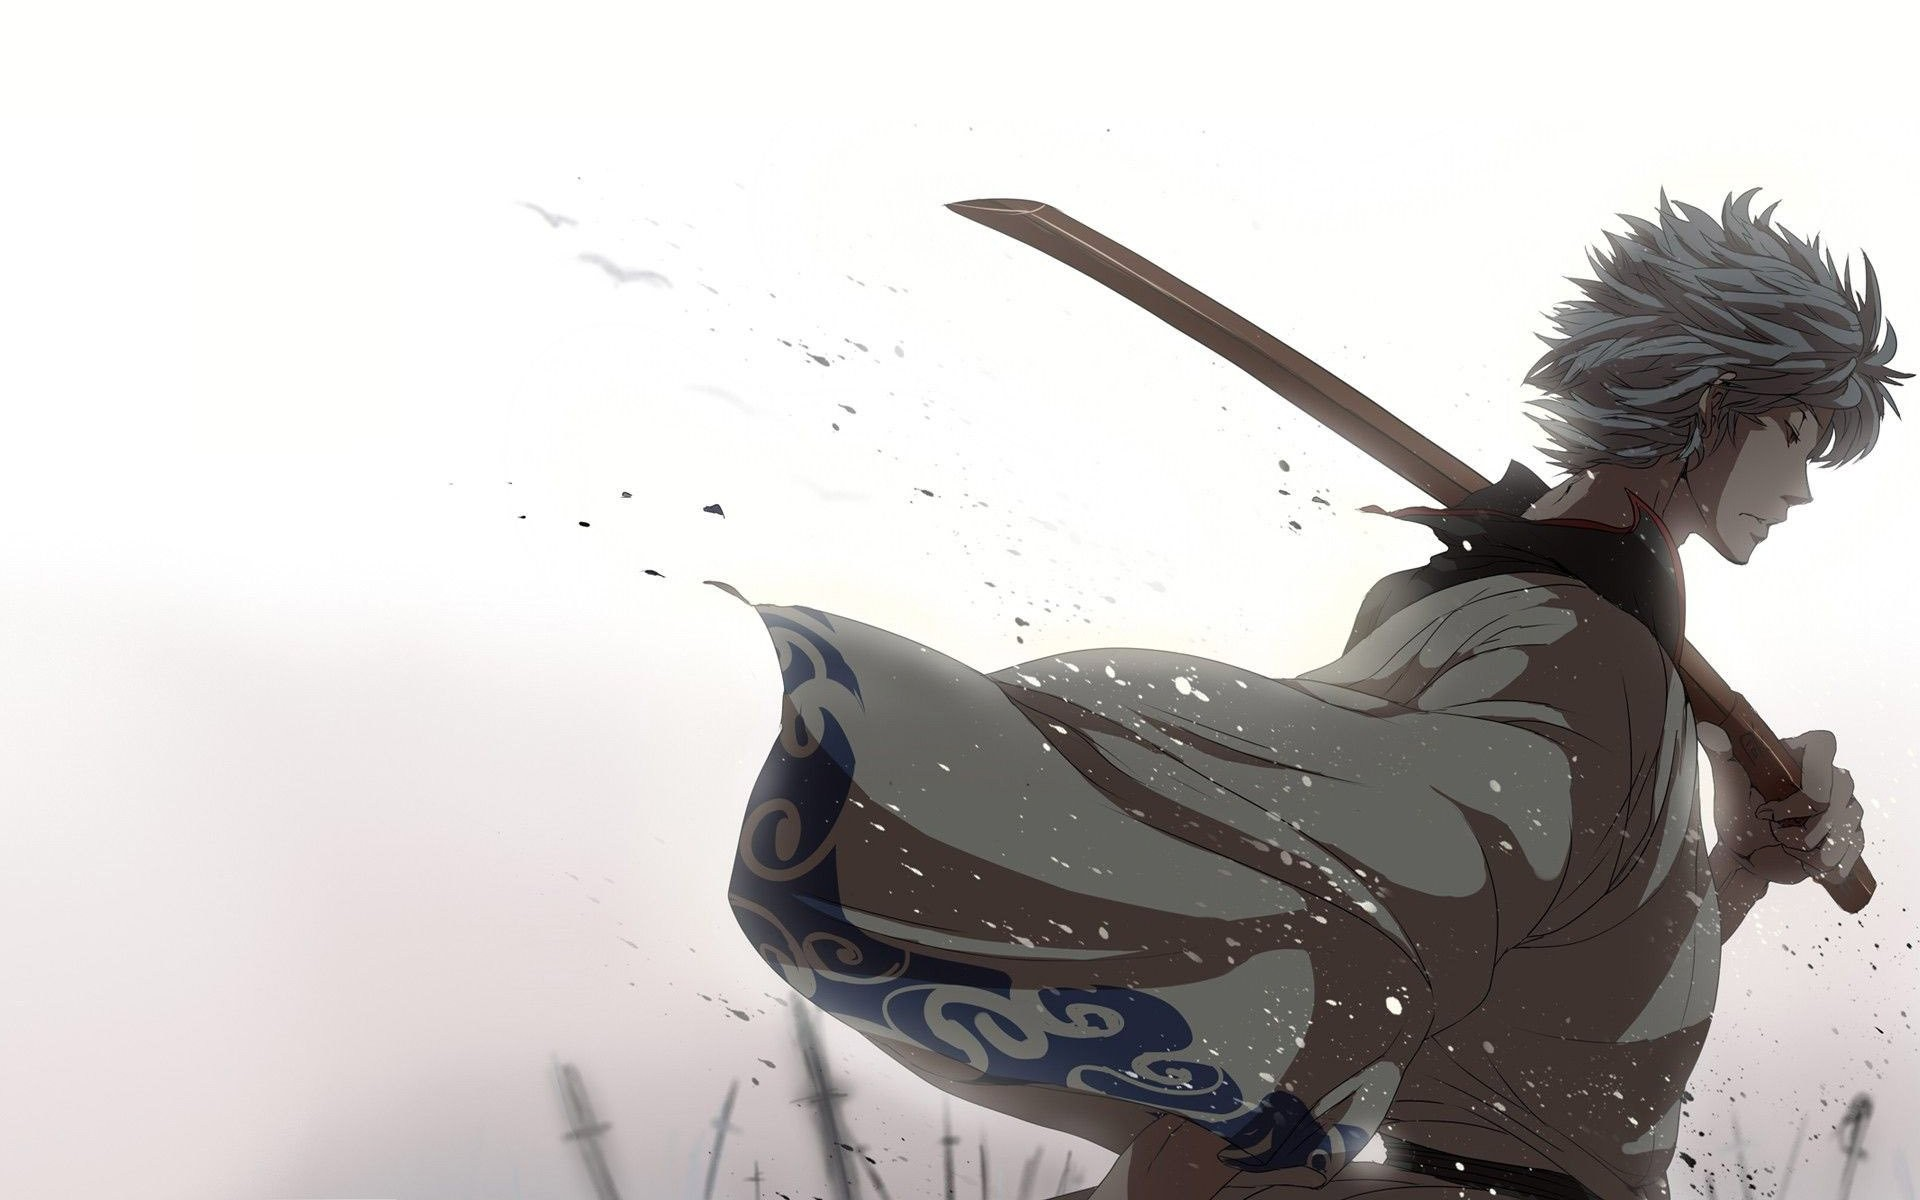 Gintama wallpaper download free awesome full hd - Best anime picture hd ...